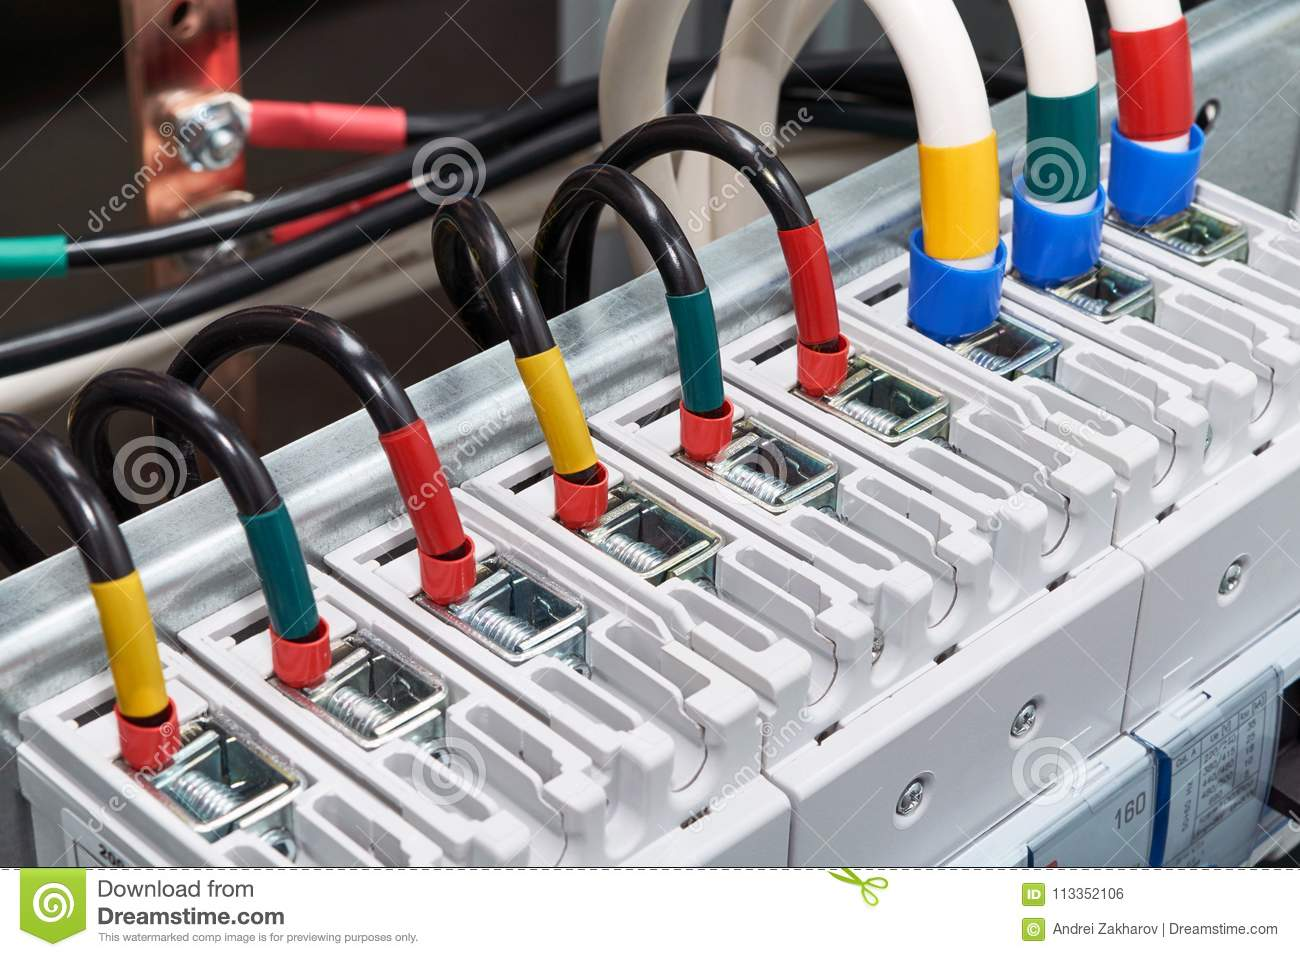 Brilliant Range Of Electrical Wires Or Cables Are Connected To The Power Wiring Digital Resources Timewpwclawcorpcom